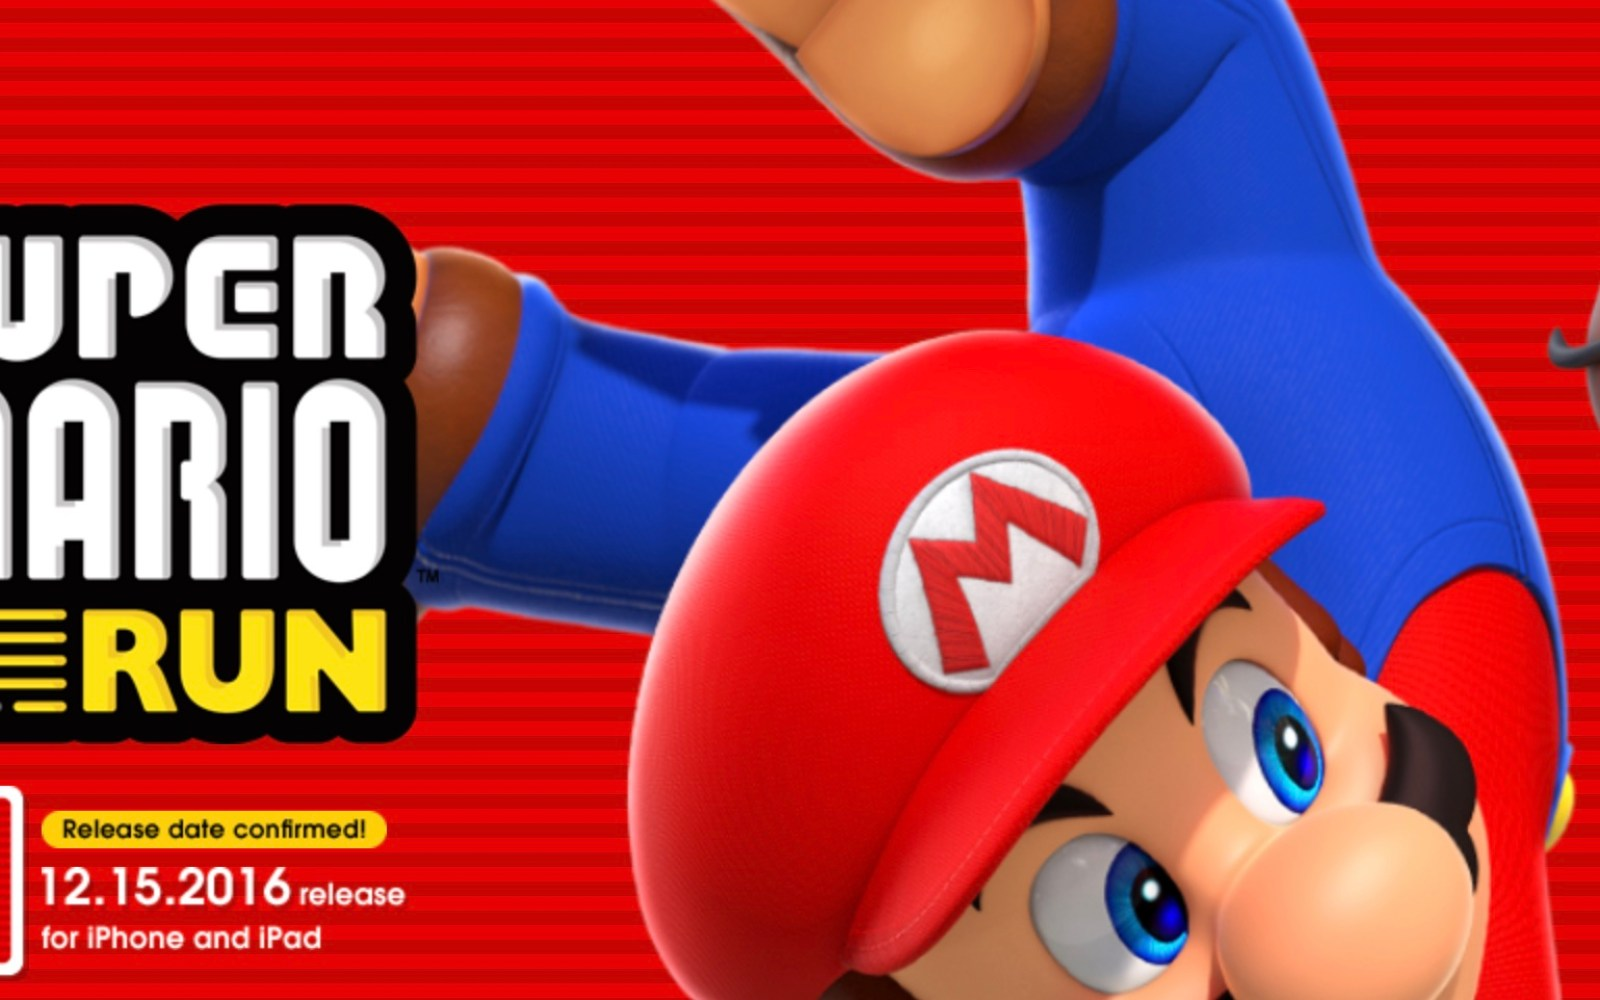 Try Super Mario Run in Apple Stores today, game featured on Jimmy Fallon ahead of launch next week